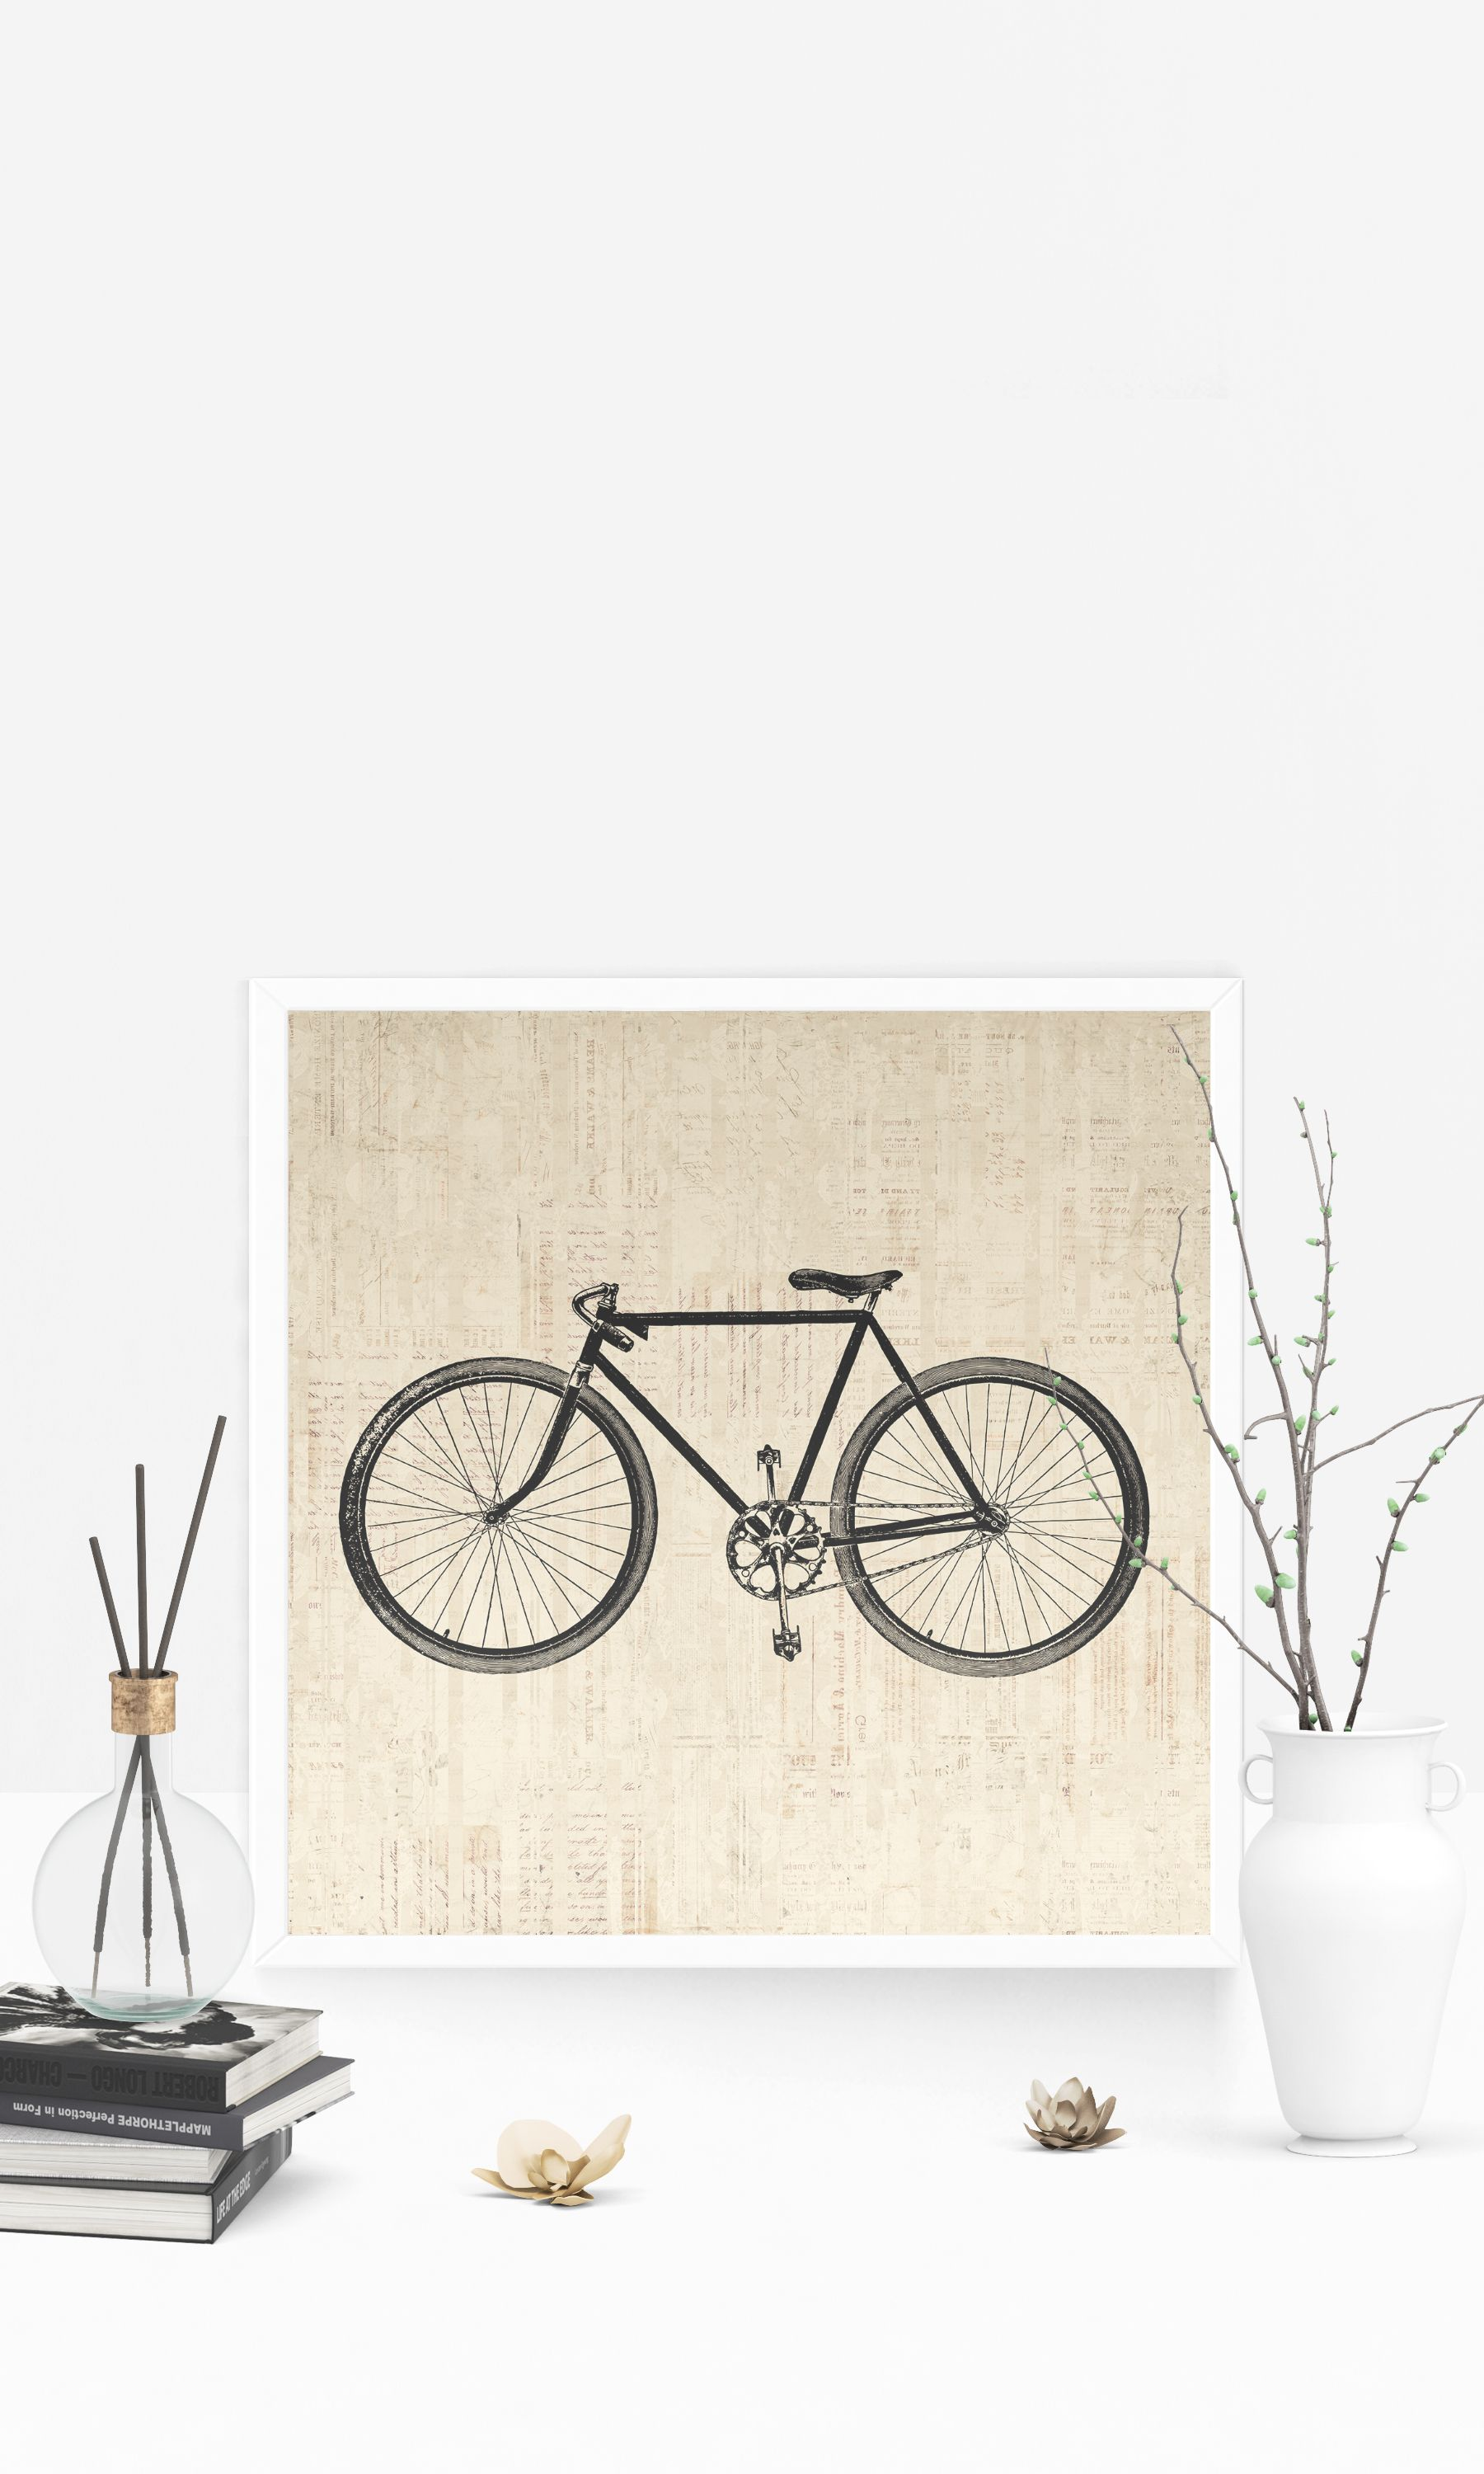 Vintage Bicycle Wall Art Print For Cycling Themed Home Decoration